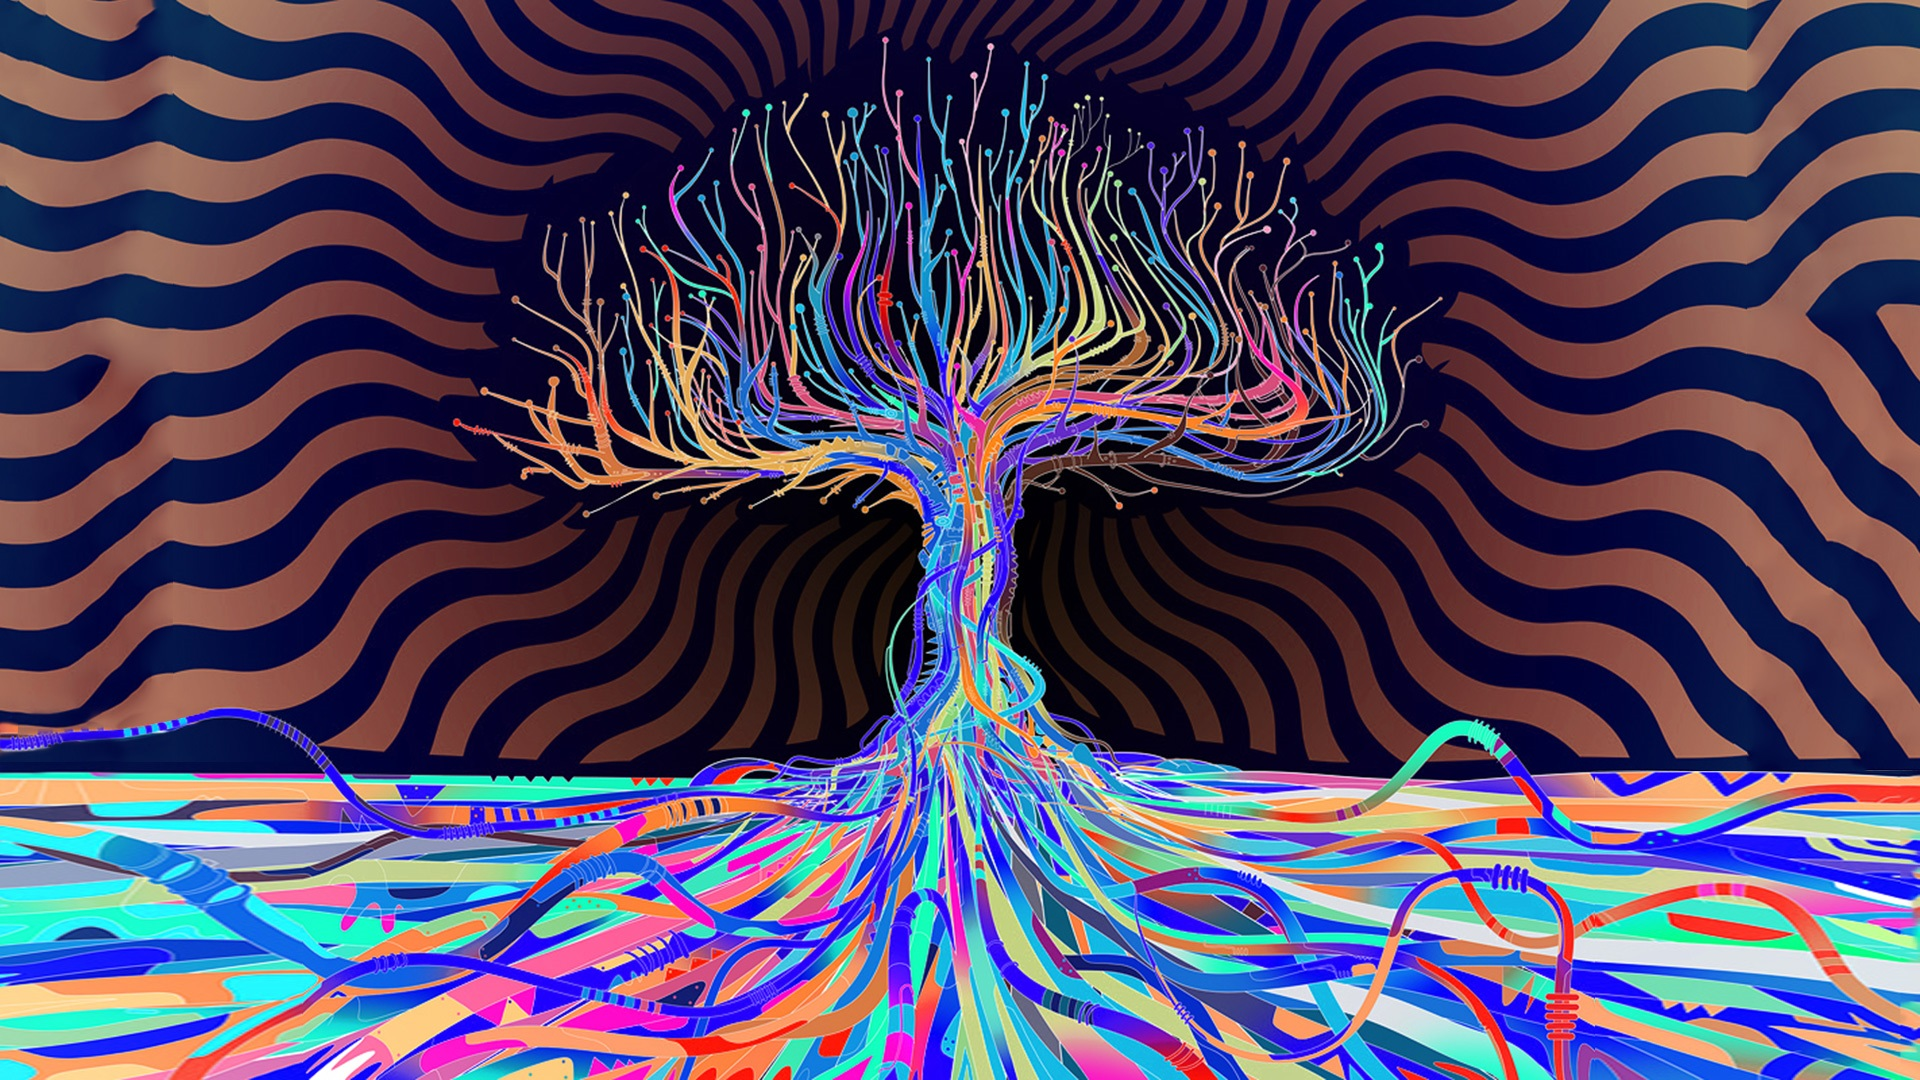 General 1920x1080 trees abstract Matei Apostolescu artwork psychedelic surreal colorful blue cyan turquoise